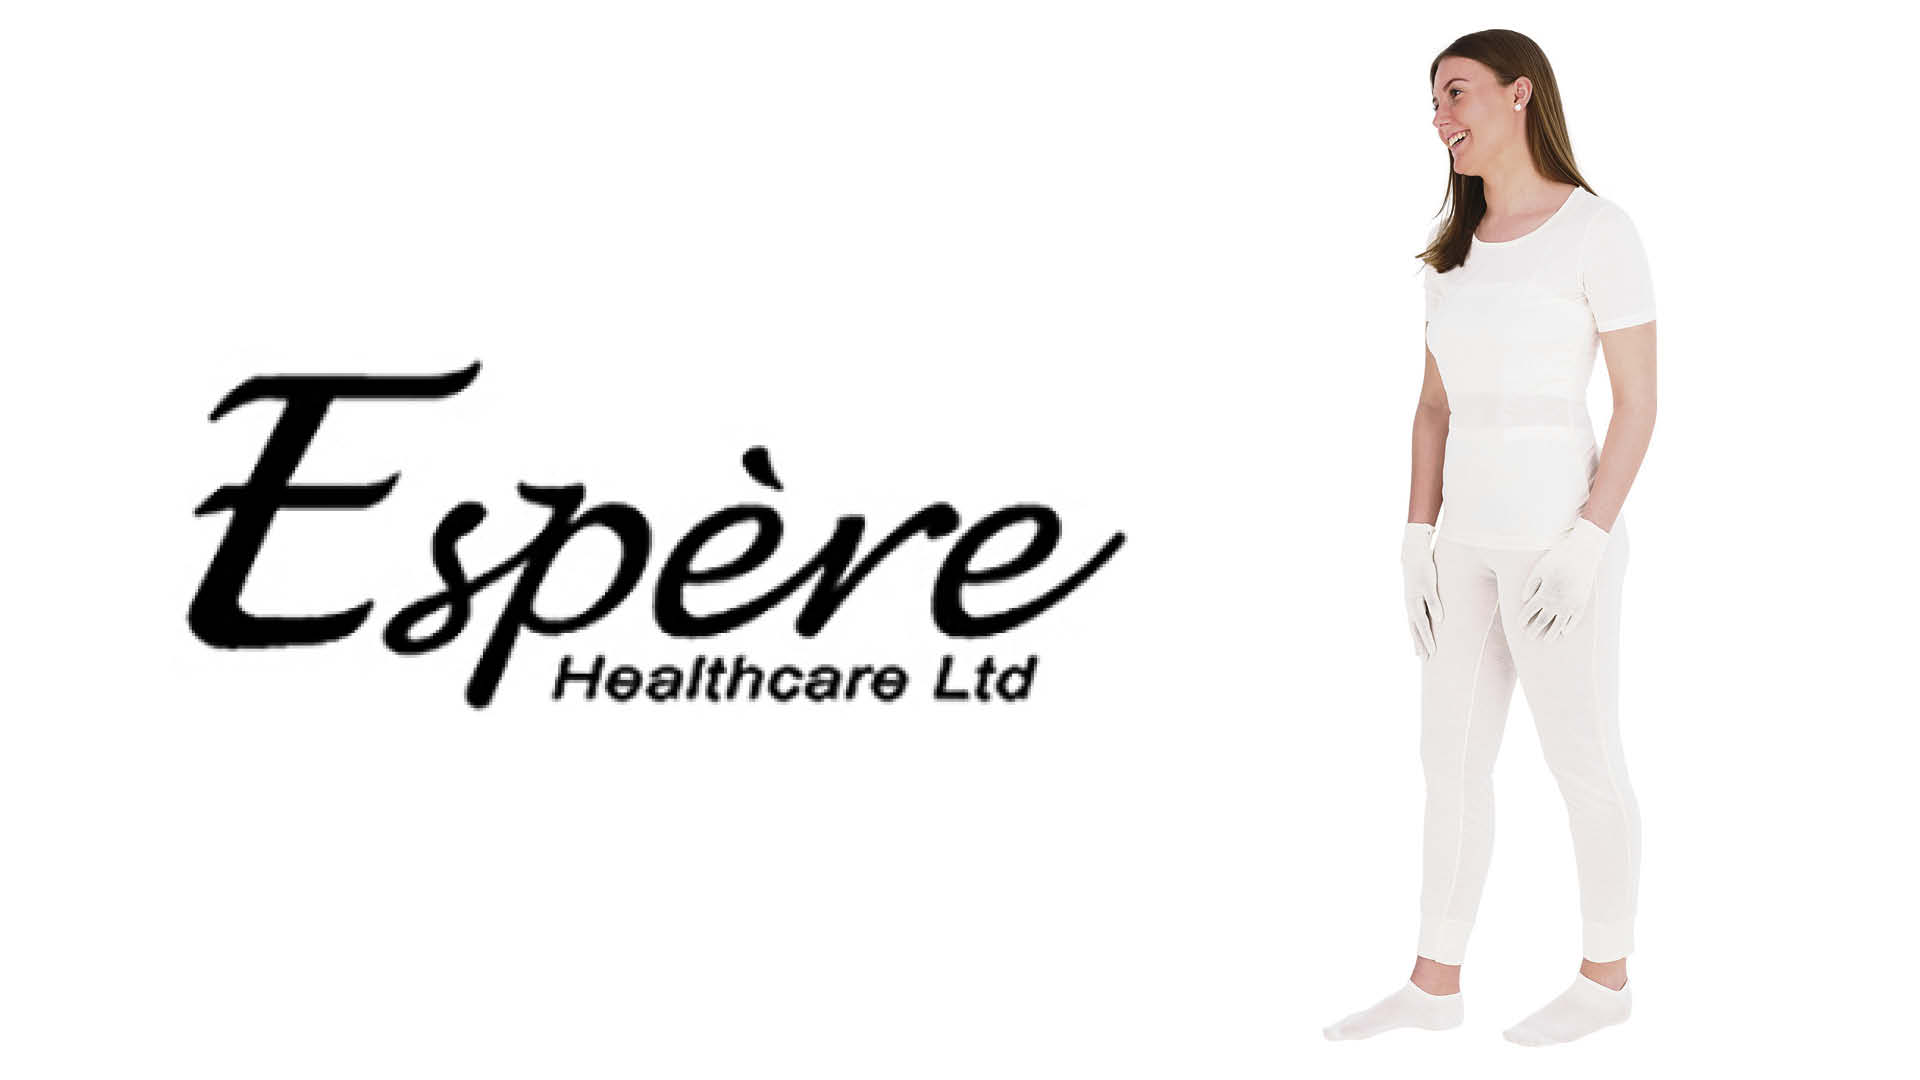 Win a voucher for eczema clothing or bedding Worth £100!